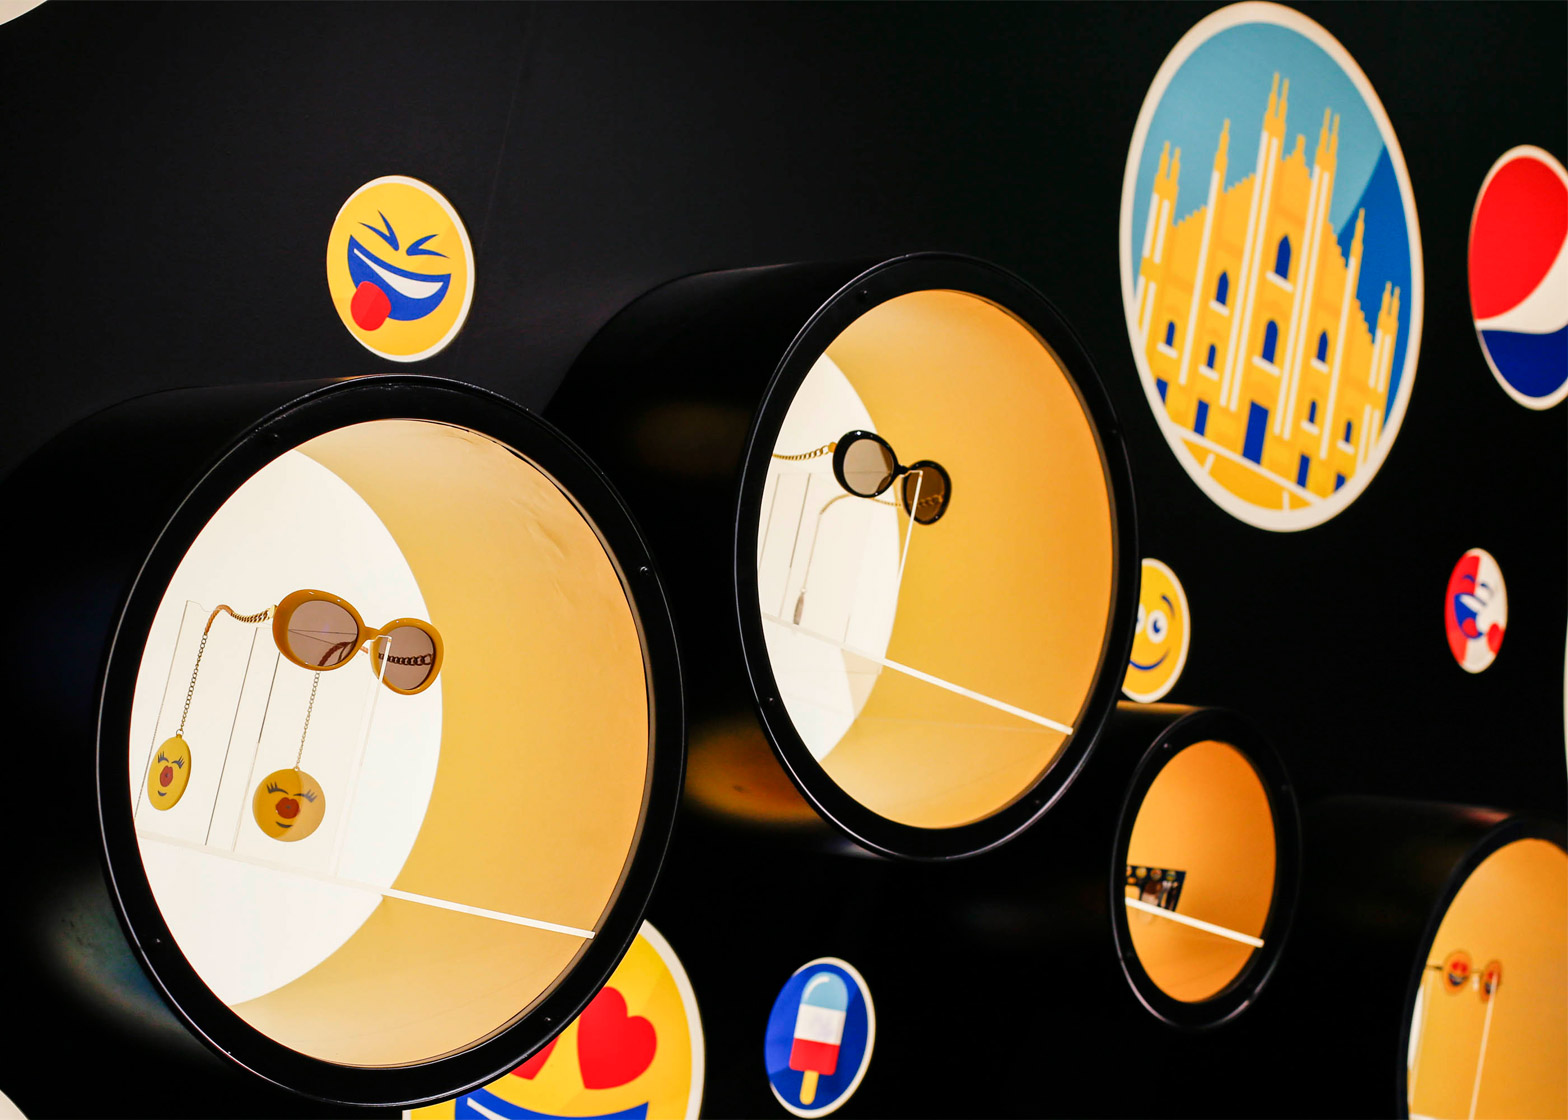 PepsiCo's installation during Milan design week